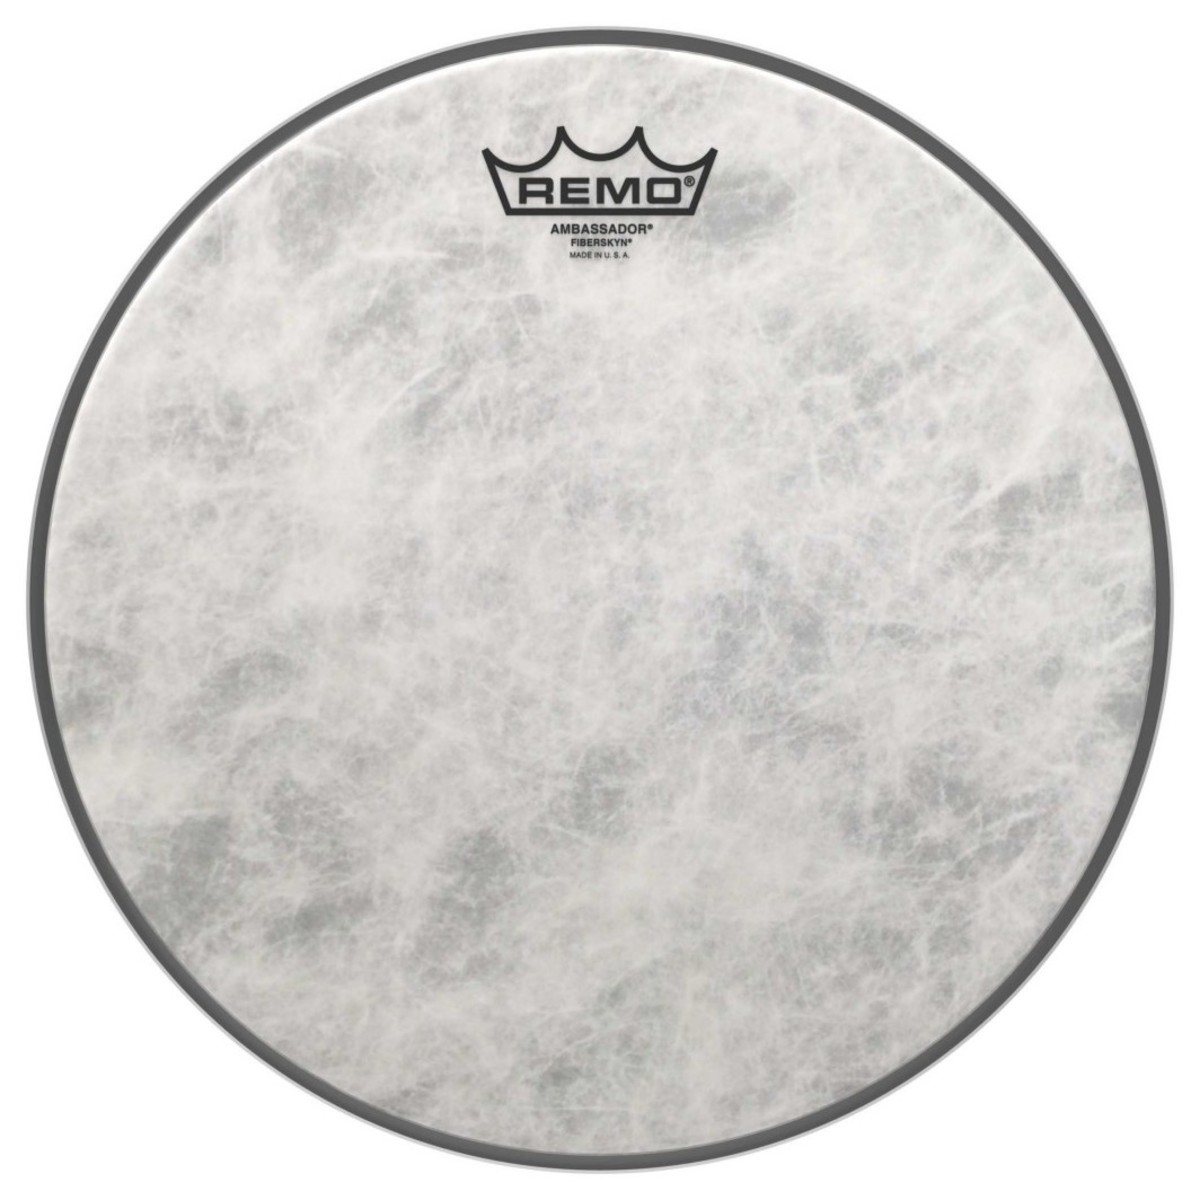 Click to view product details and reviews for Remo Ambassador Fiberskyn 3 12 Drum Head.